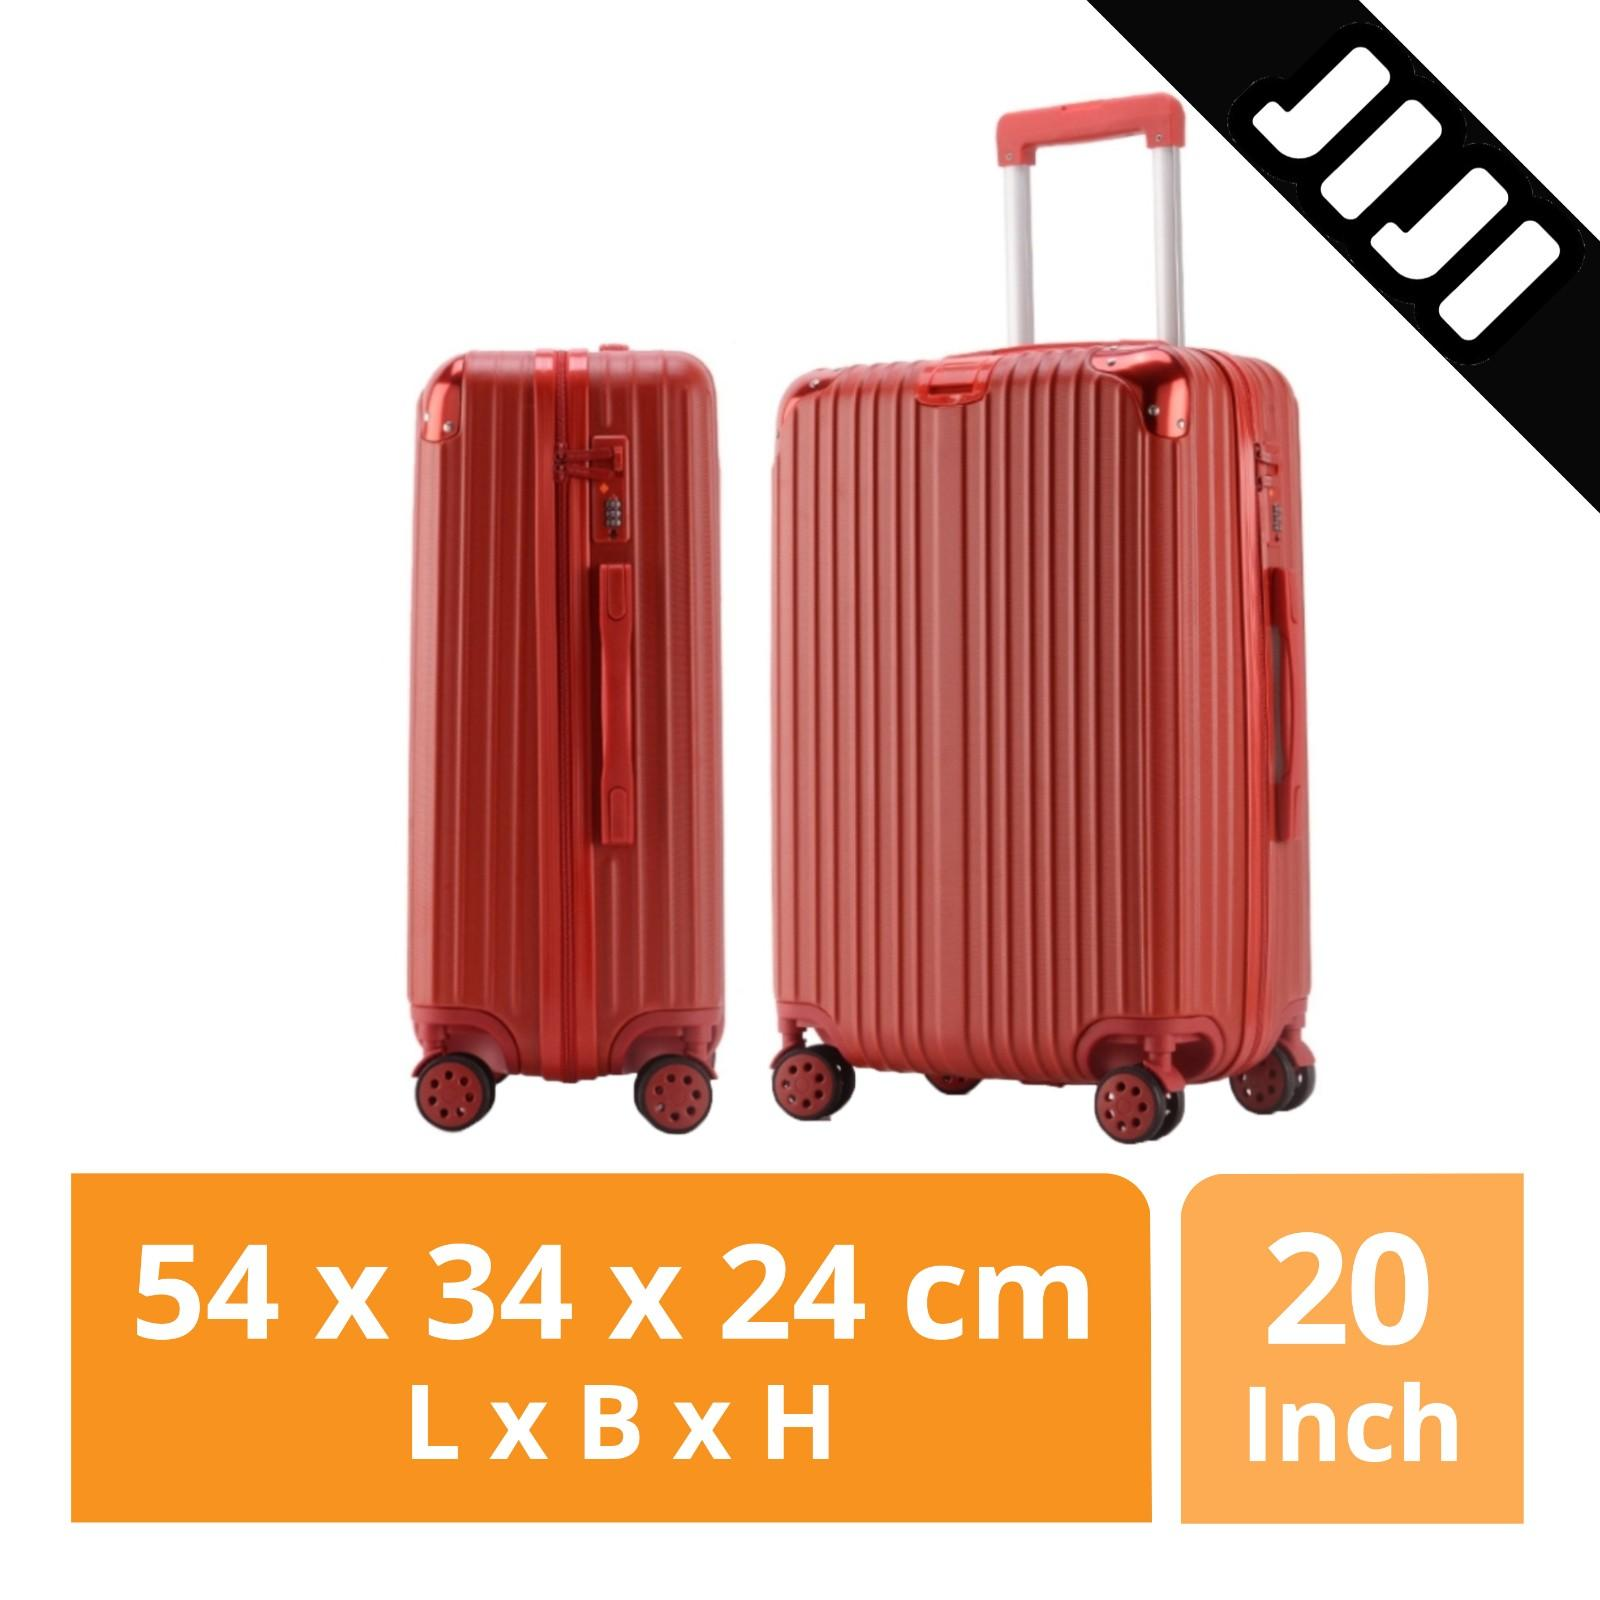 53f2da4ea Luggage Sets - Buy Luggage Sets at Best Price in Singapore | www ...